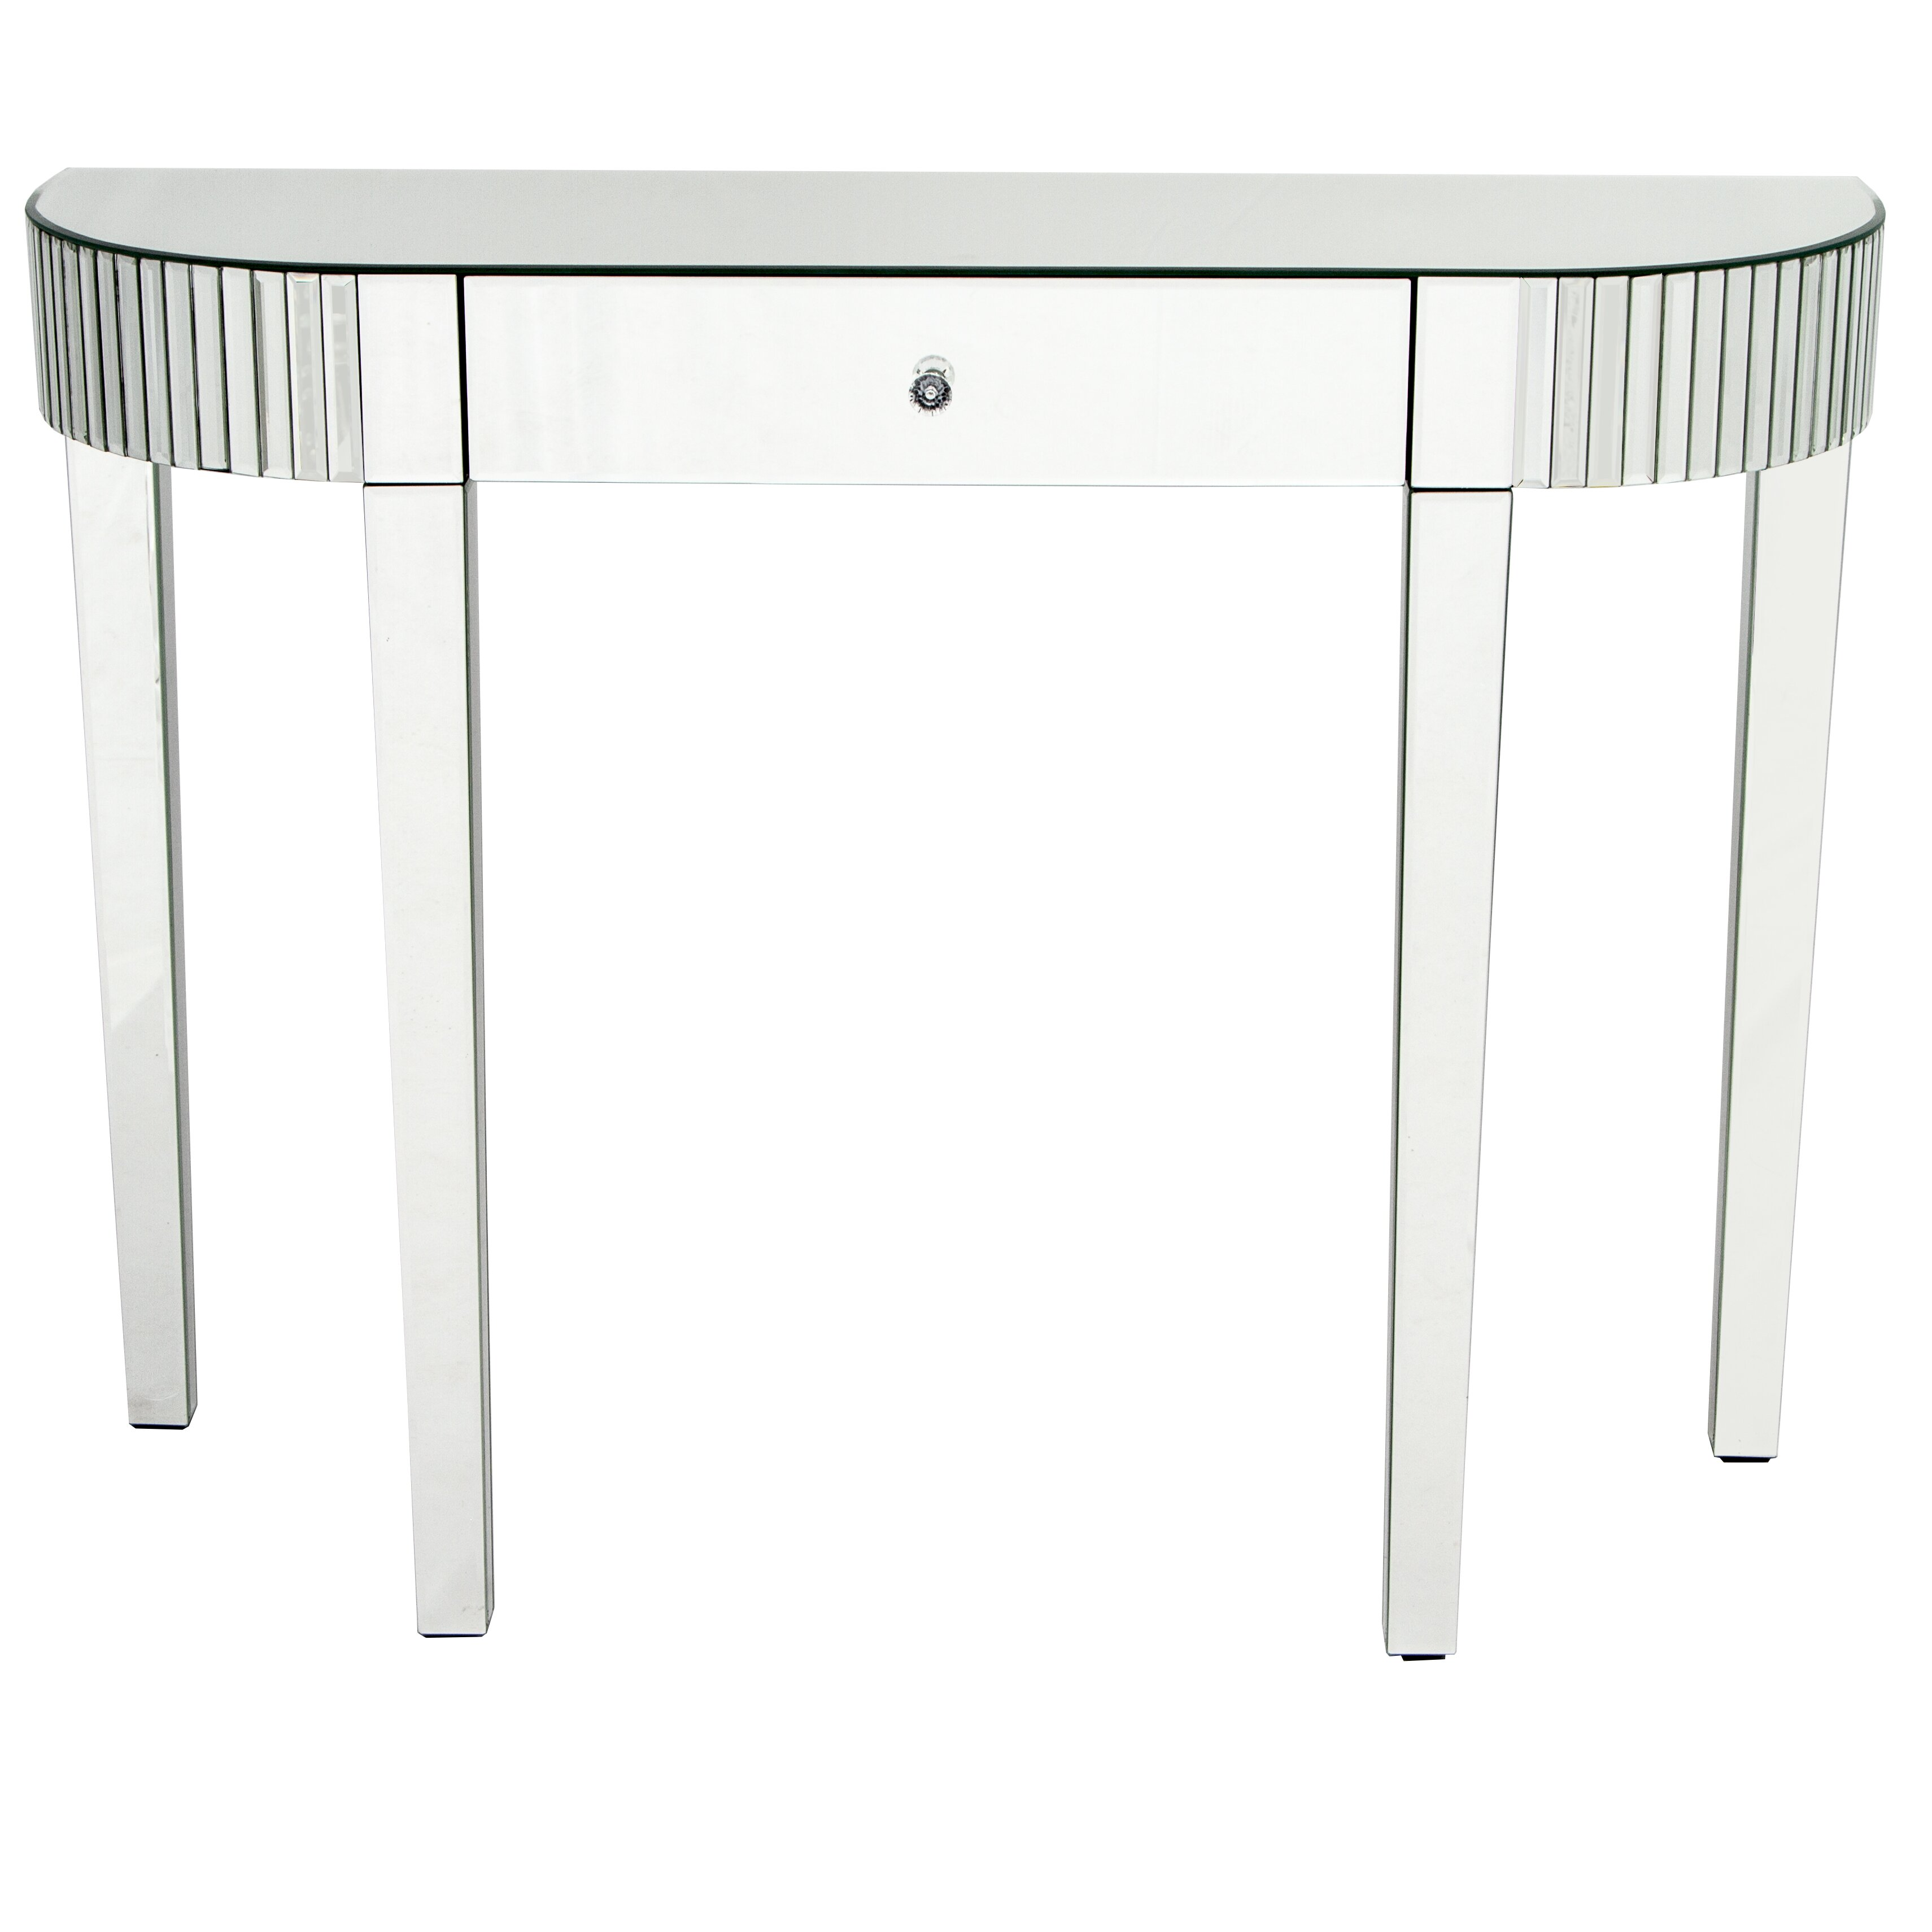 Alterton console table reviews wayfair uk for Furniture 2 day shipping